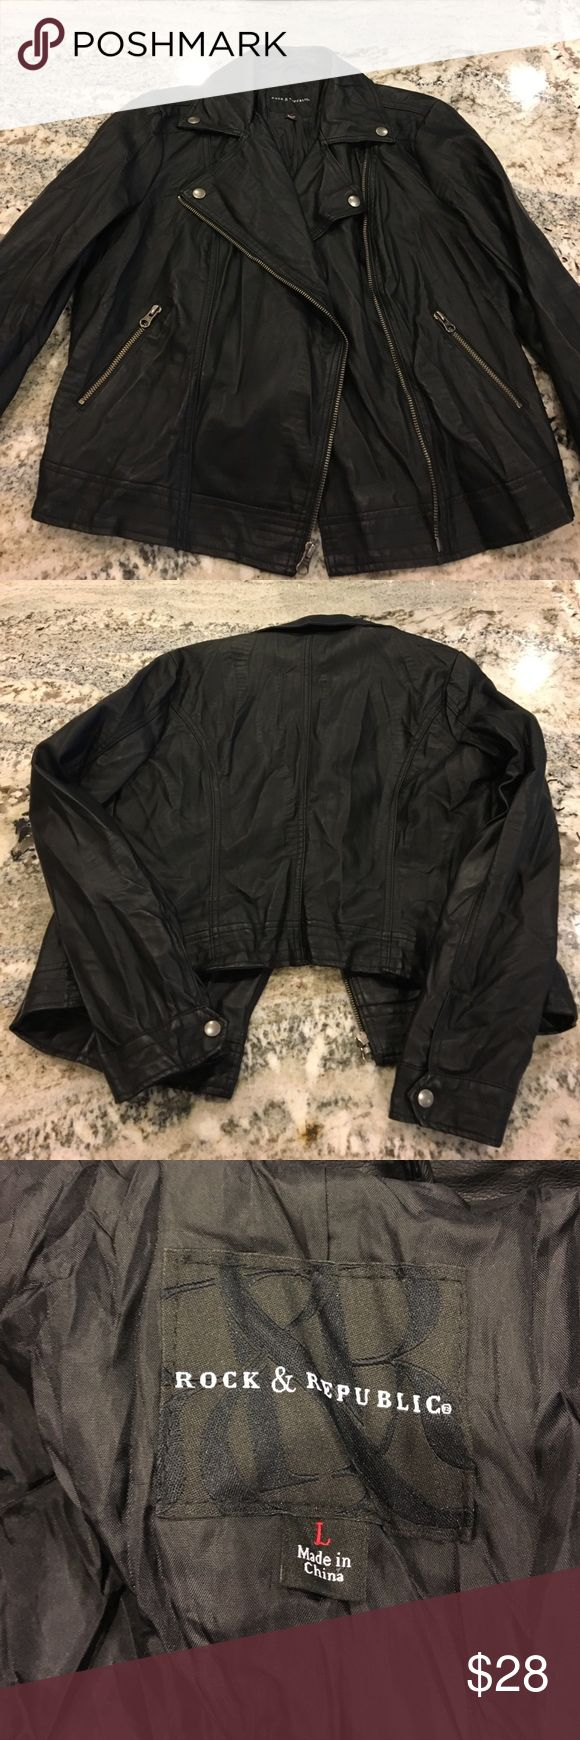 SALE 🎉 Rock & Republic Faux Leather Jacket Super cute and very comfortable jacket, worn once for less than an hour. Excellent condition!! Rock & Republic Jackets & Coats